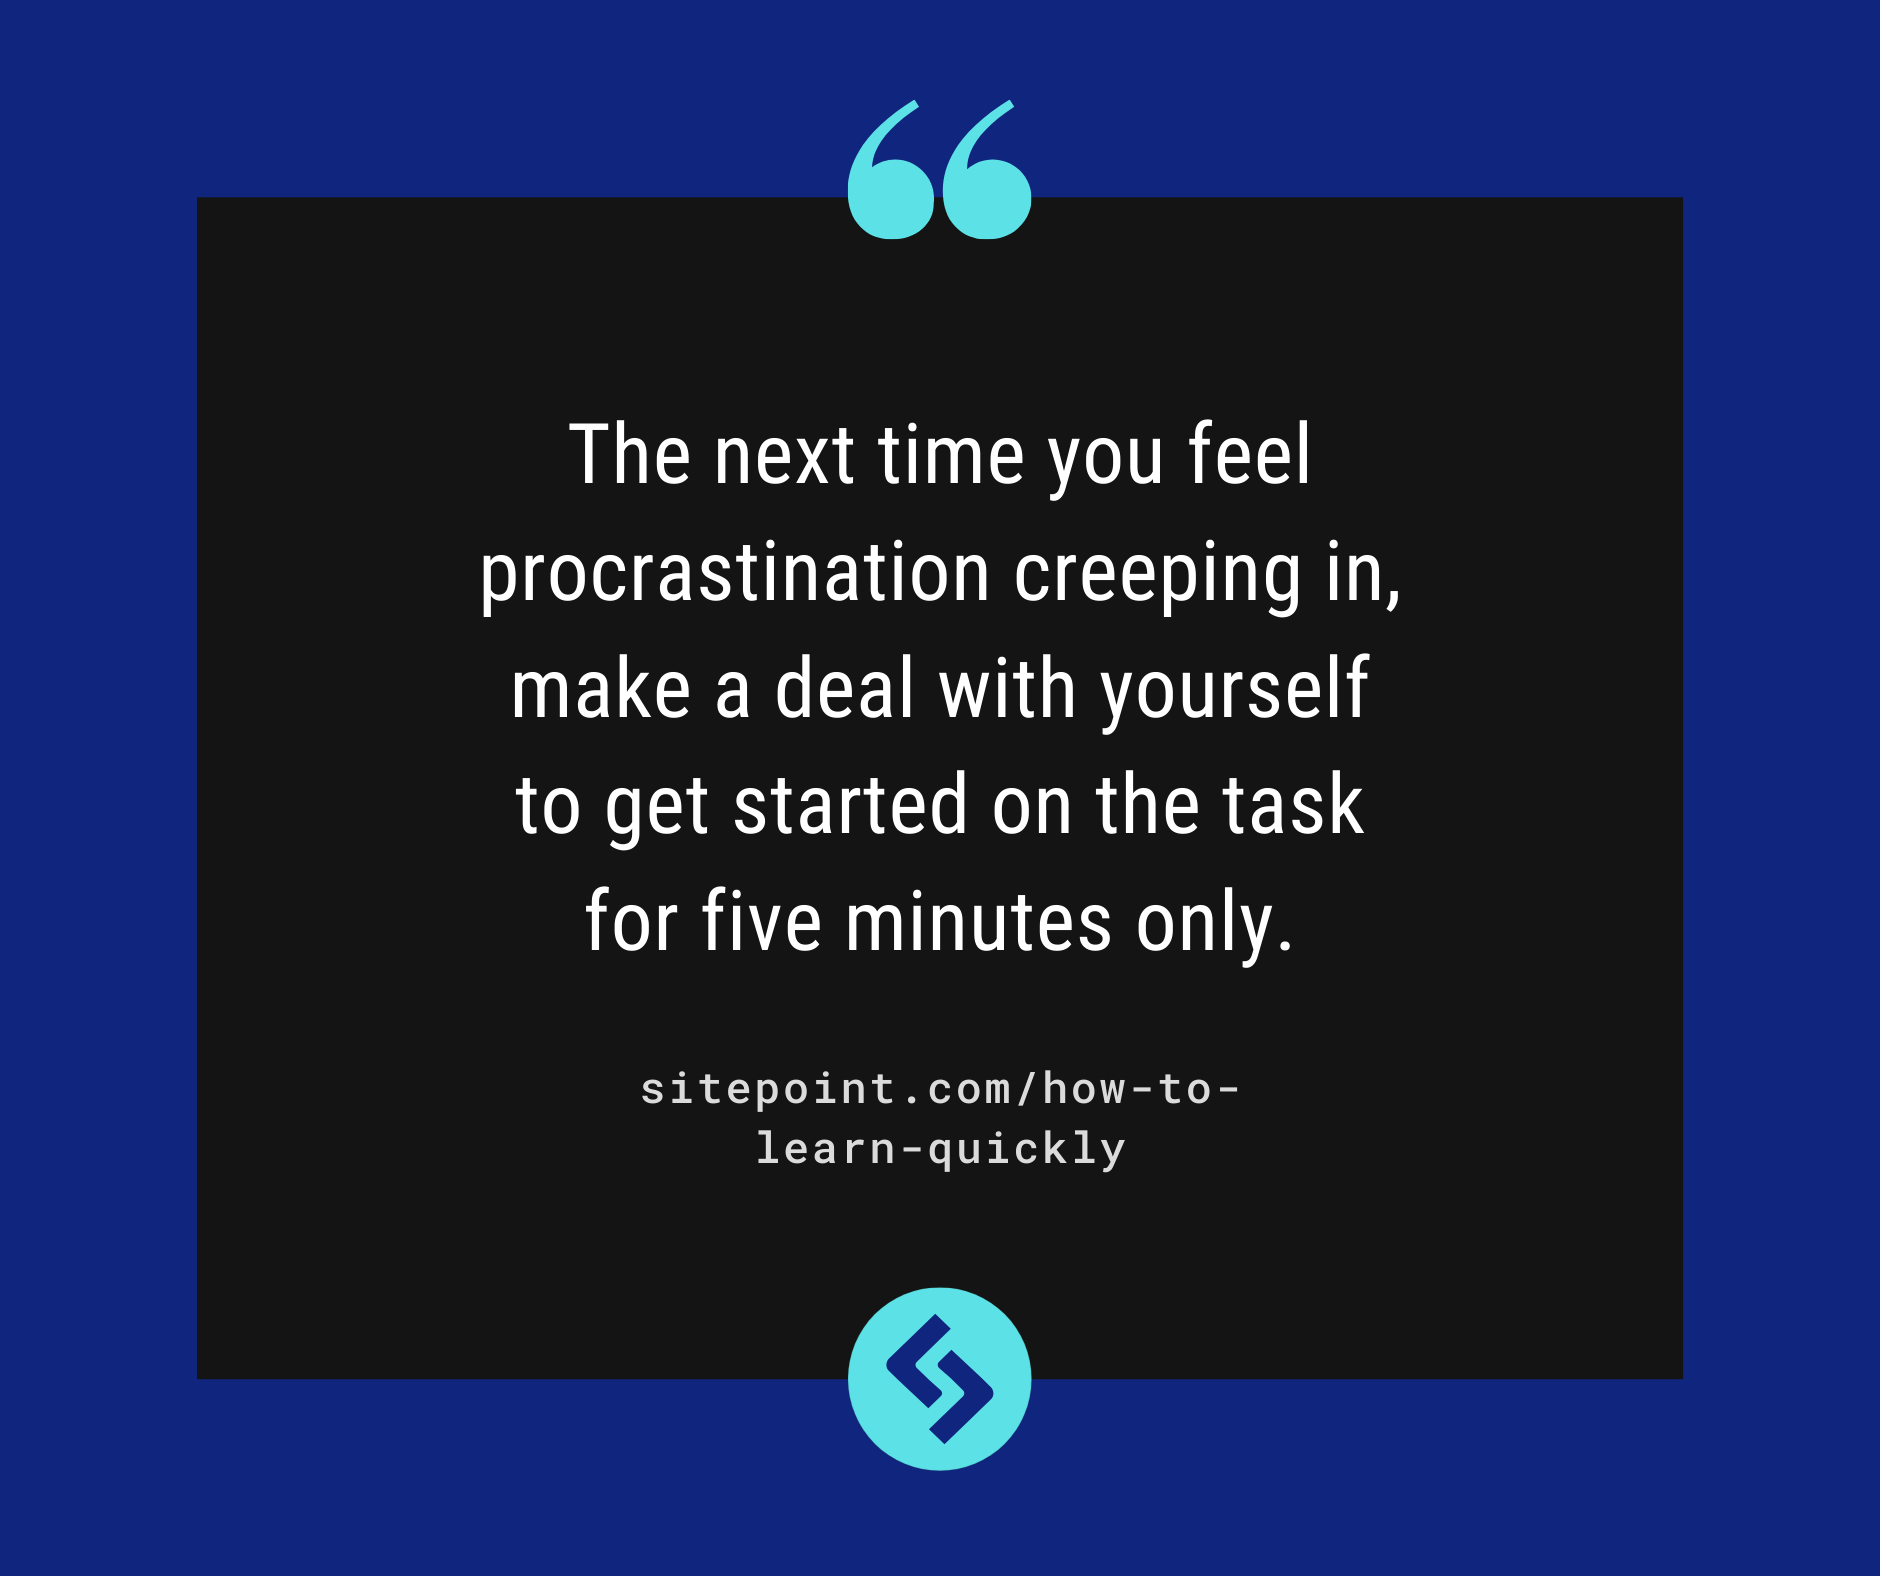 The next time you feel procrastination creeping in, make a deal with yourself to get started on the task for five minutes only.